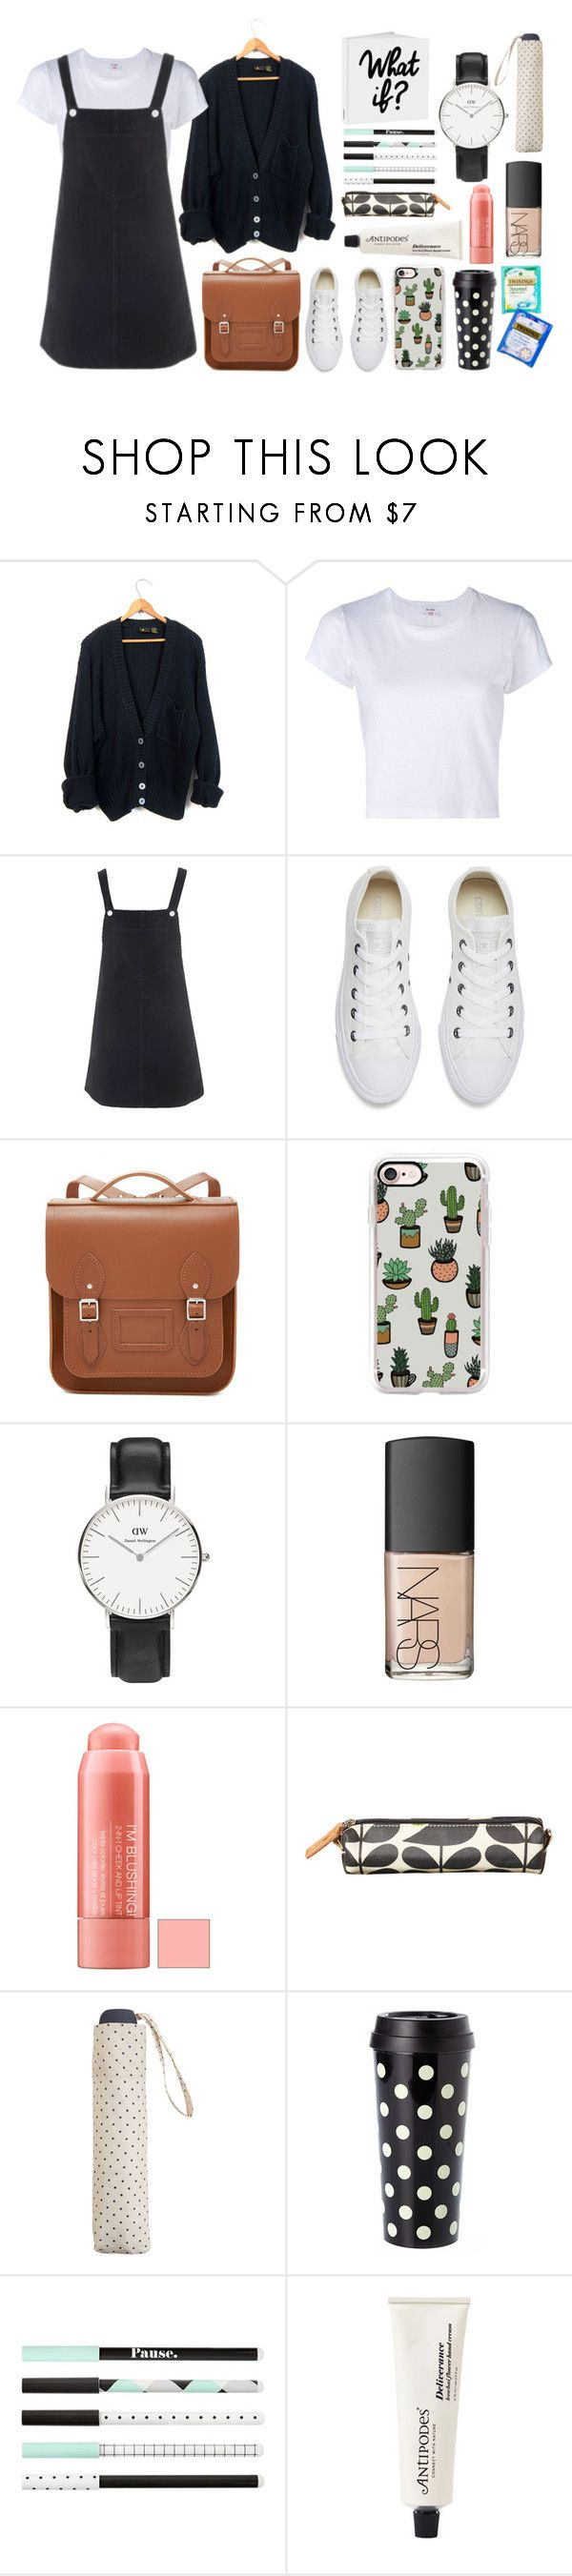 """October"" by cool7677m ❤ liked on Polyvore featuring RE/DONE, Topshop, Converse, The Cambridge Satchel Company, Casetify, Daniel Wellington, NARS Cosmetics, Orla Kiely, MANGO and Kate Spade"